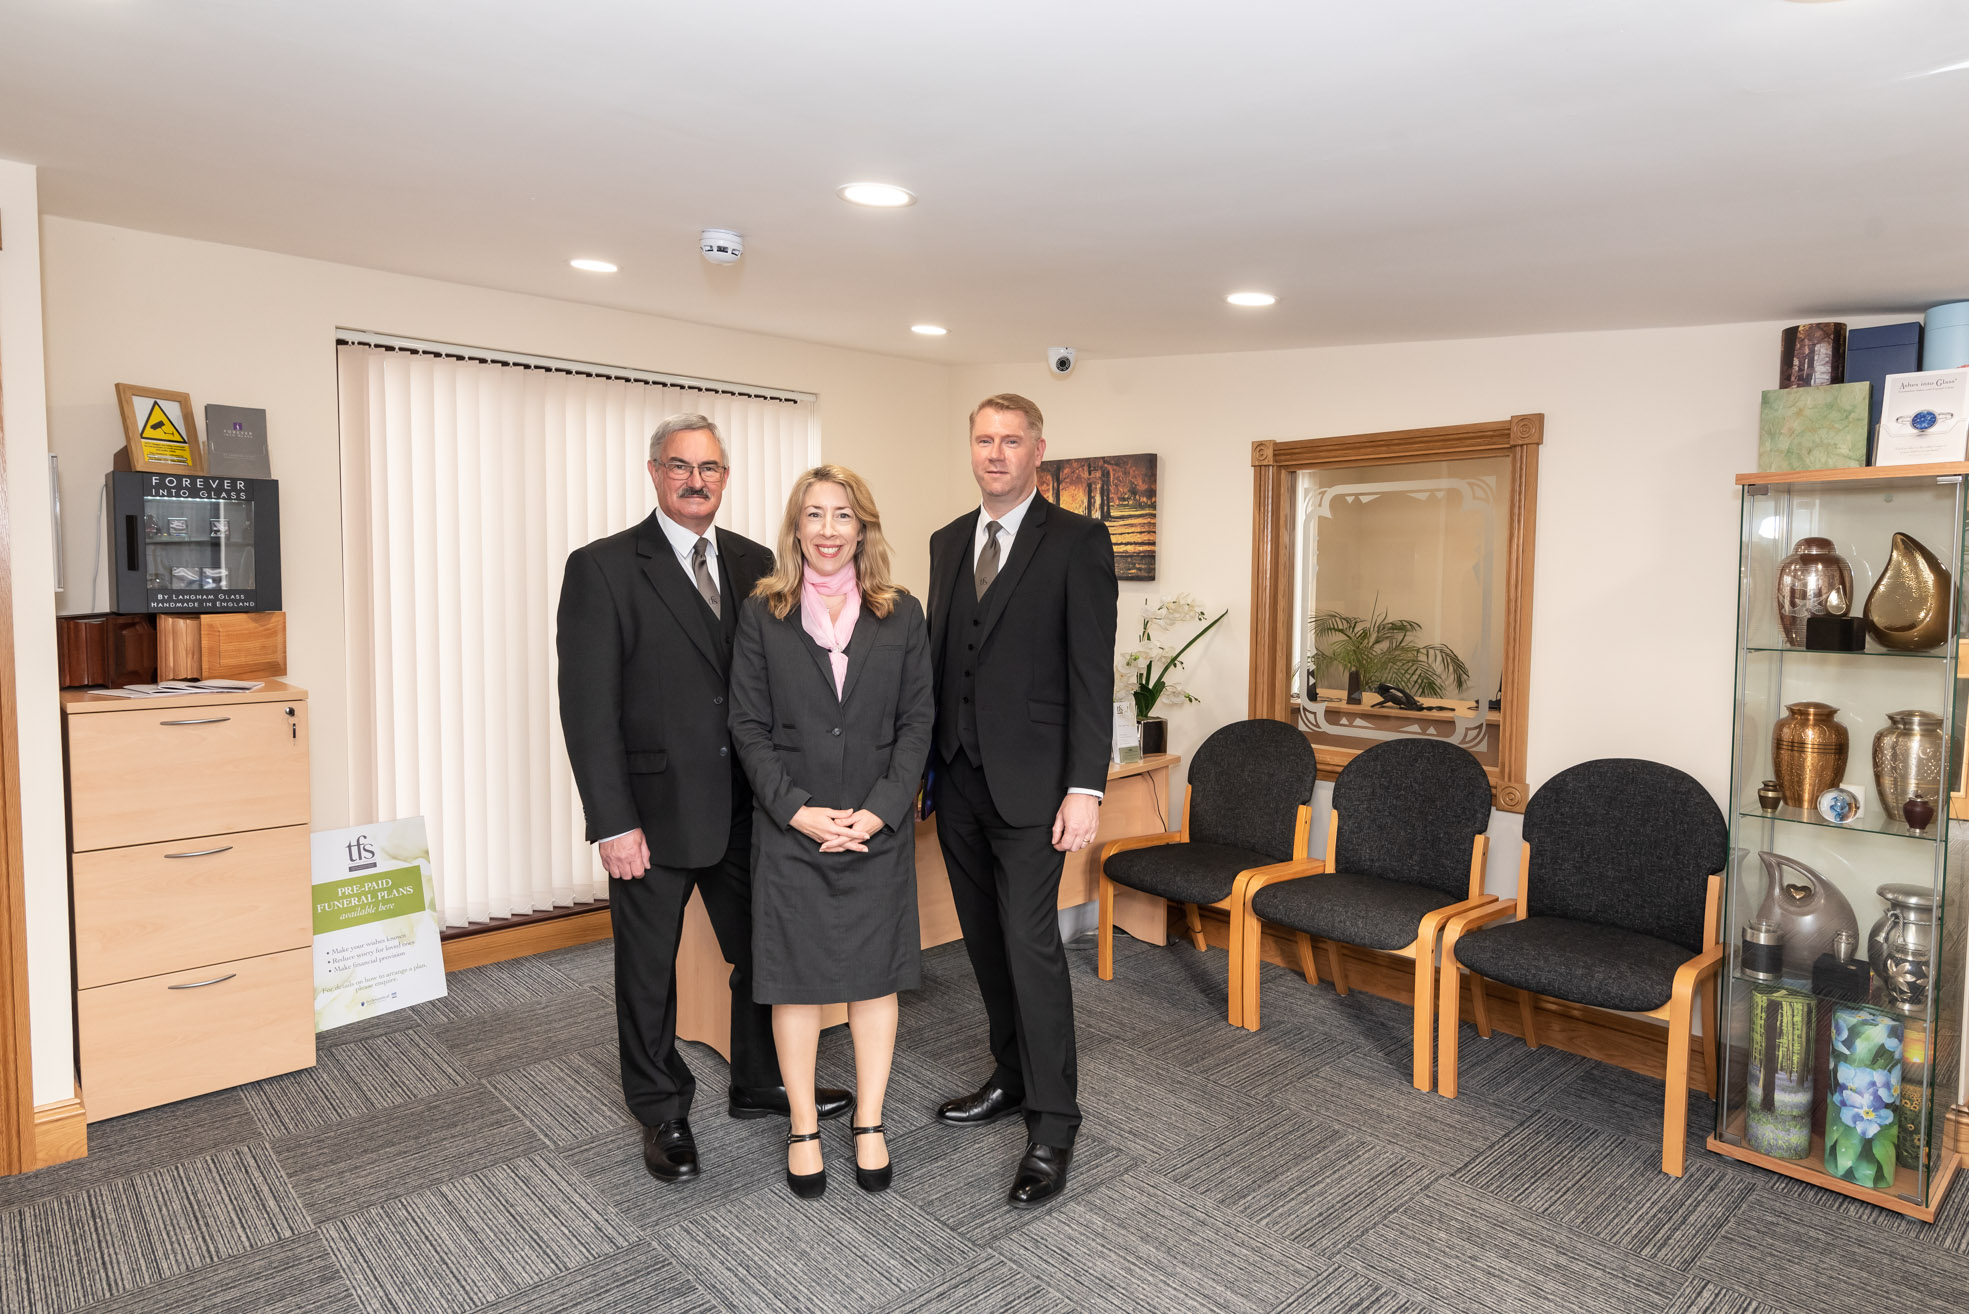 CHAPMANS & THORNALLEY FUNERAL SERVICES - A Local Independent Family Business - Swaffham, Norfolk PE37 7AY - 01760 721305 | ShowMeLocal.com